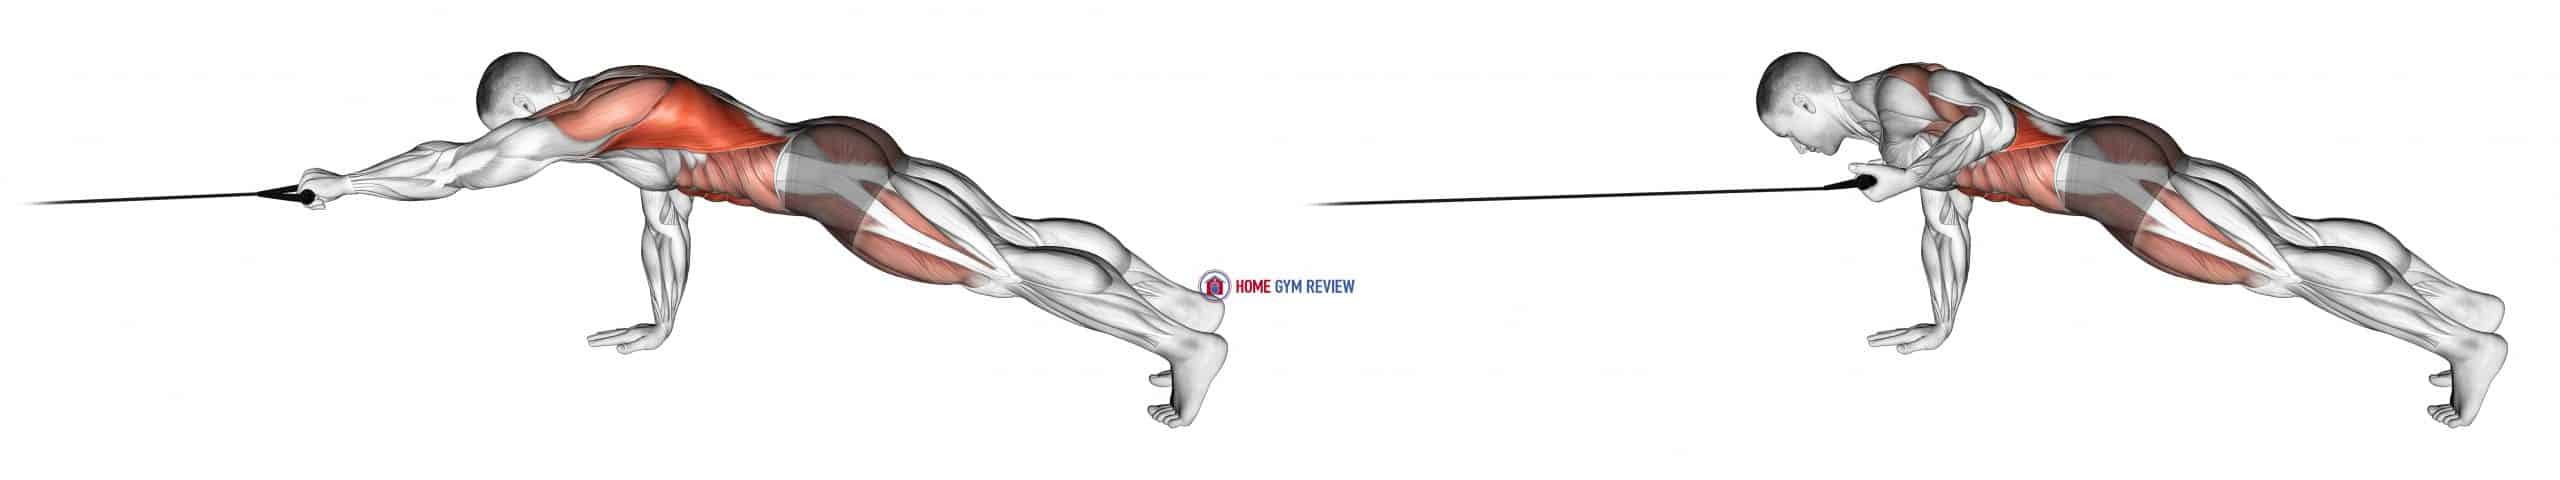 Band Front Plank with Single Arm Pulldown